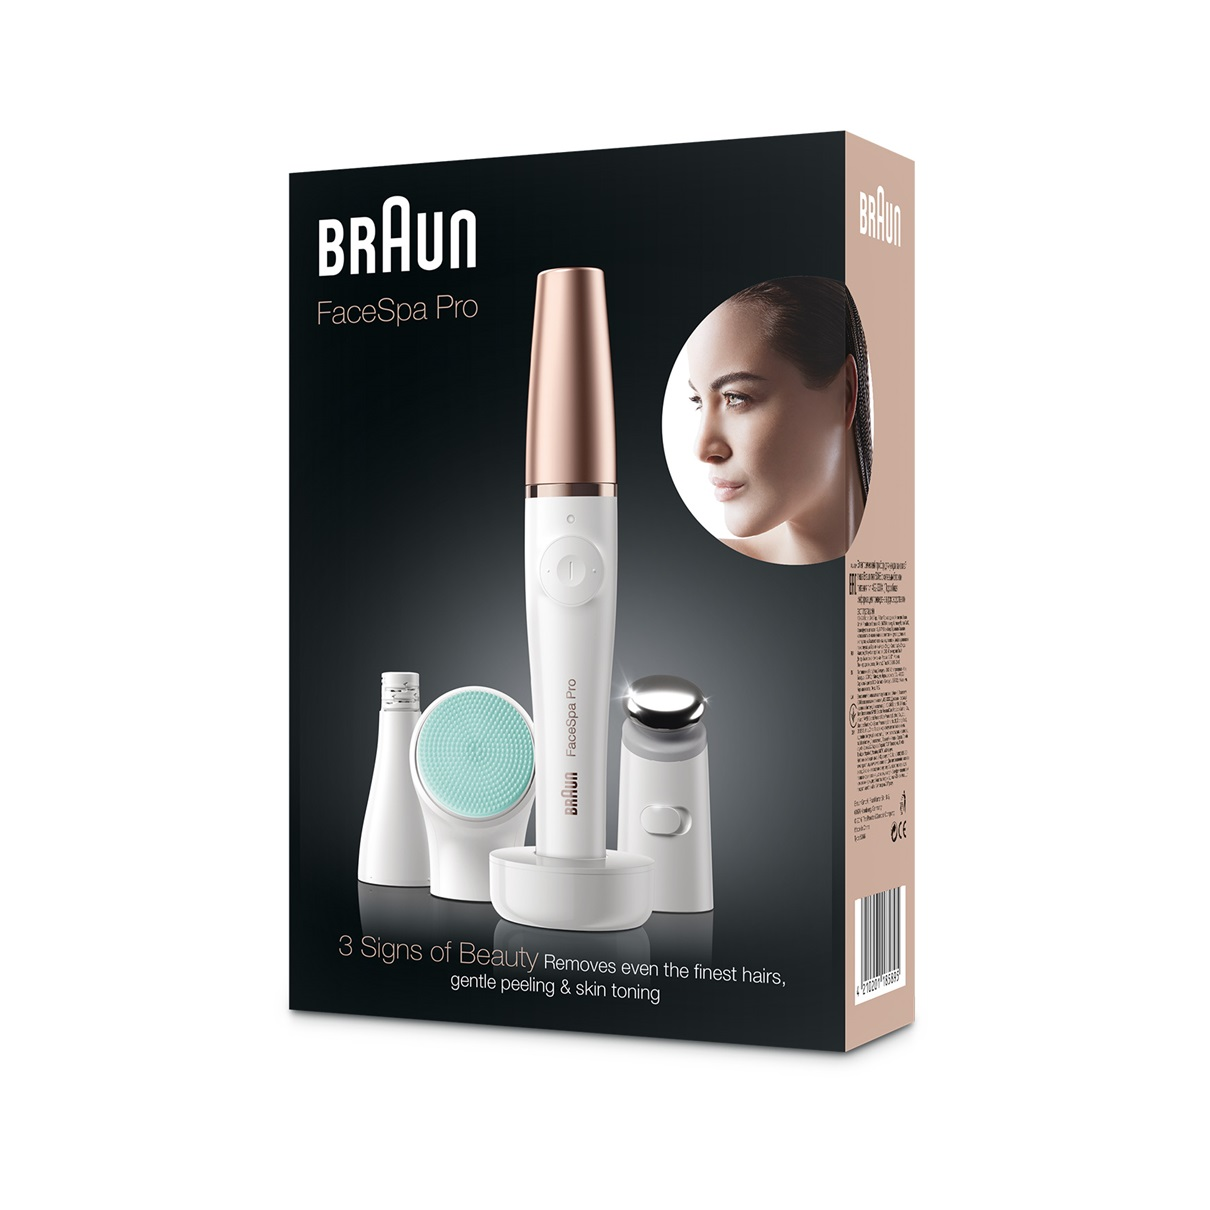 Braun FaceSpa Pro 913 - packaging